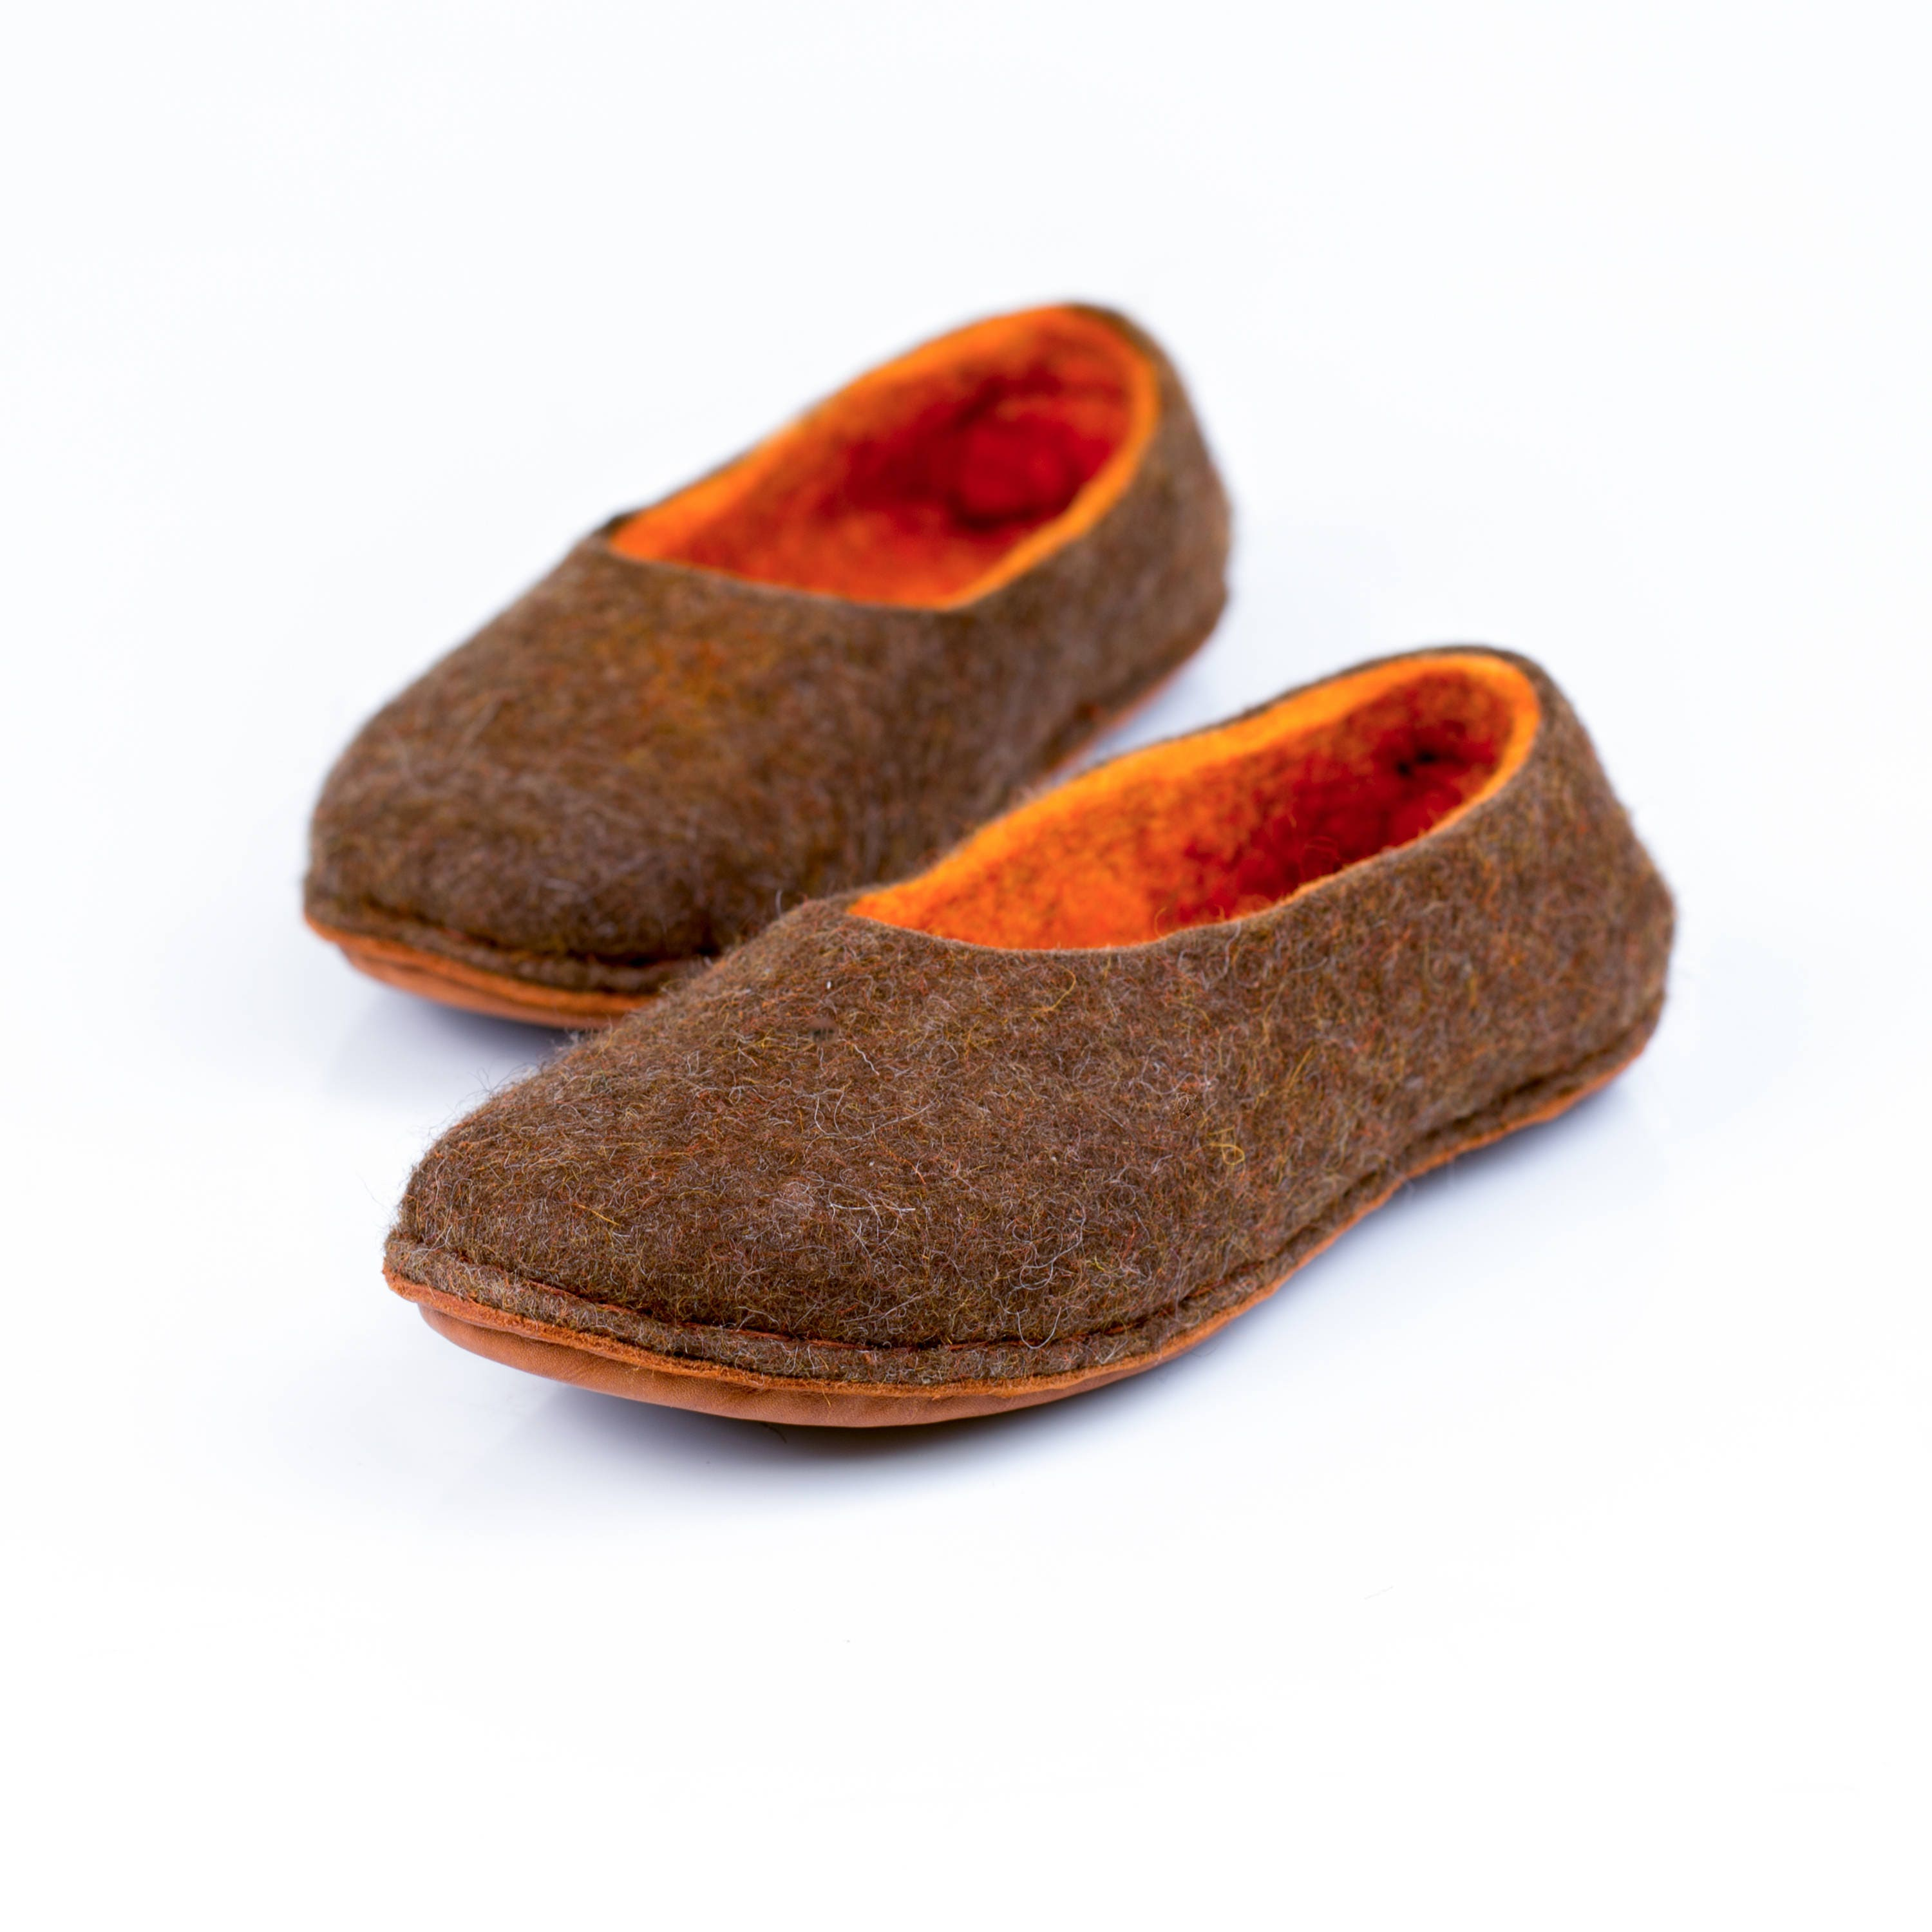 986f1e2c2e7 Brown felted wool slippers for her with orange inner layer, Alpaca wool ...